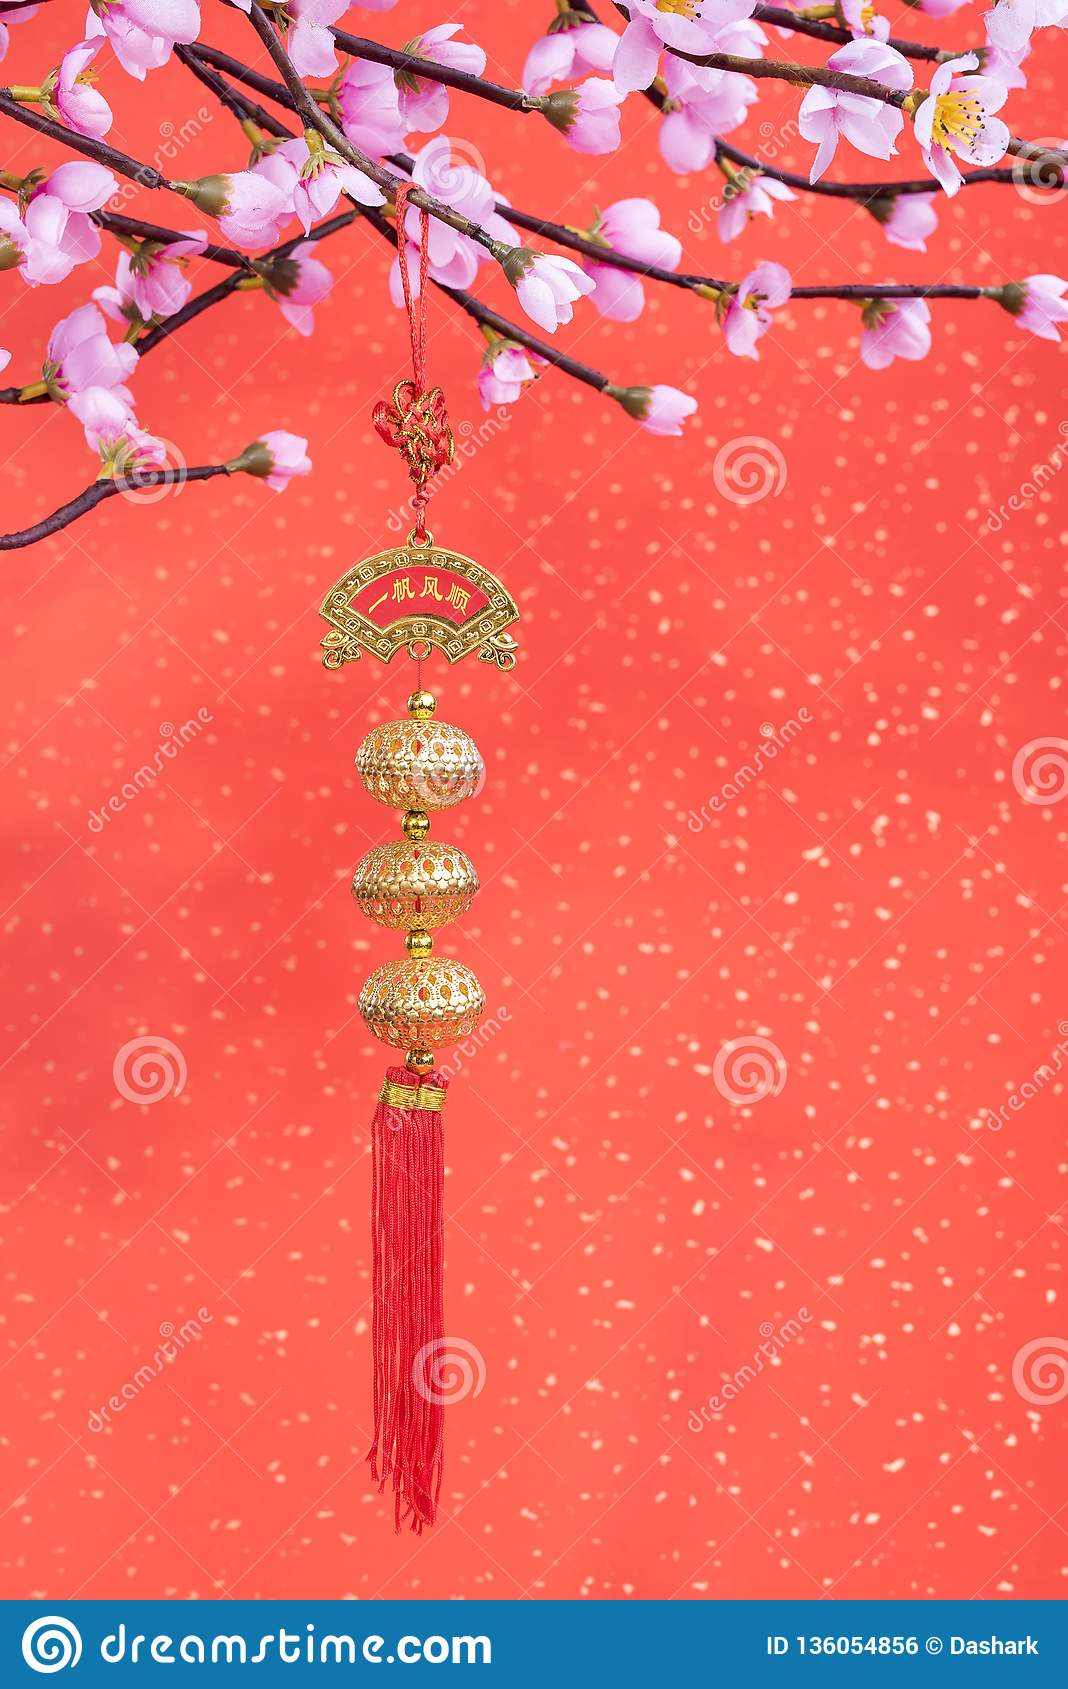 Chinese New Year Ornaments For Decoration Stock Photo ...